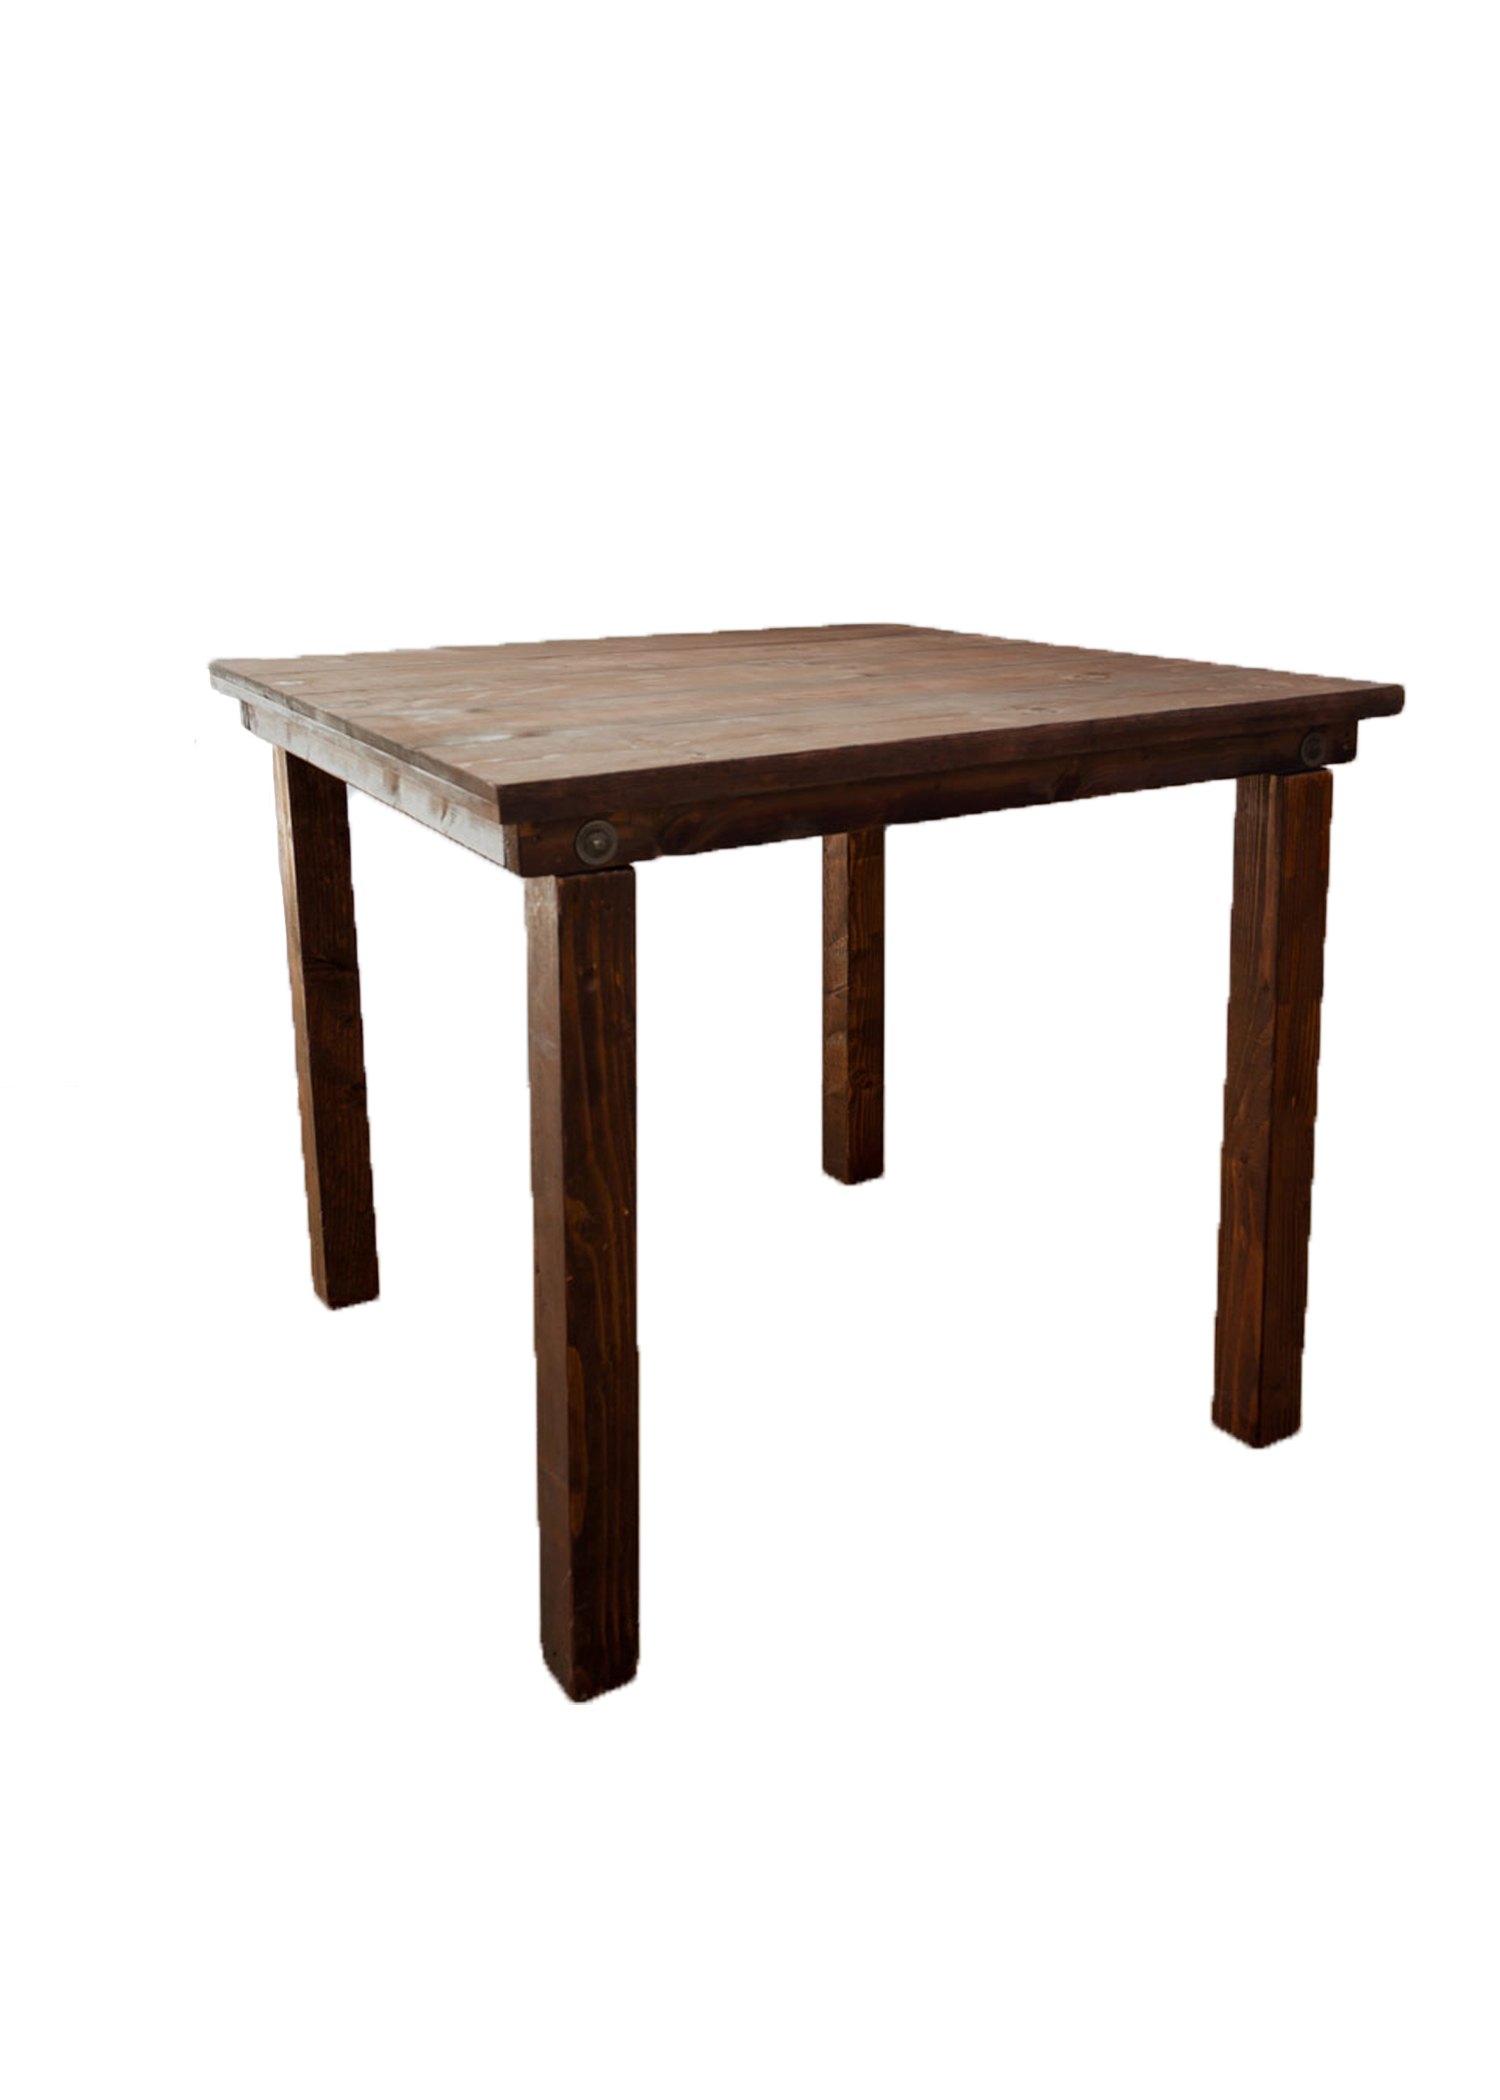 Mahogany 4ft x 4ft Square Belly Table